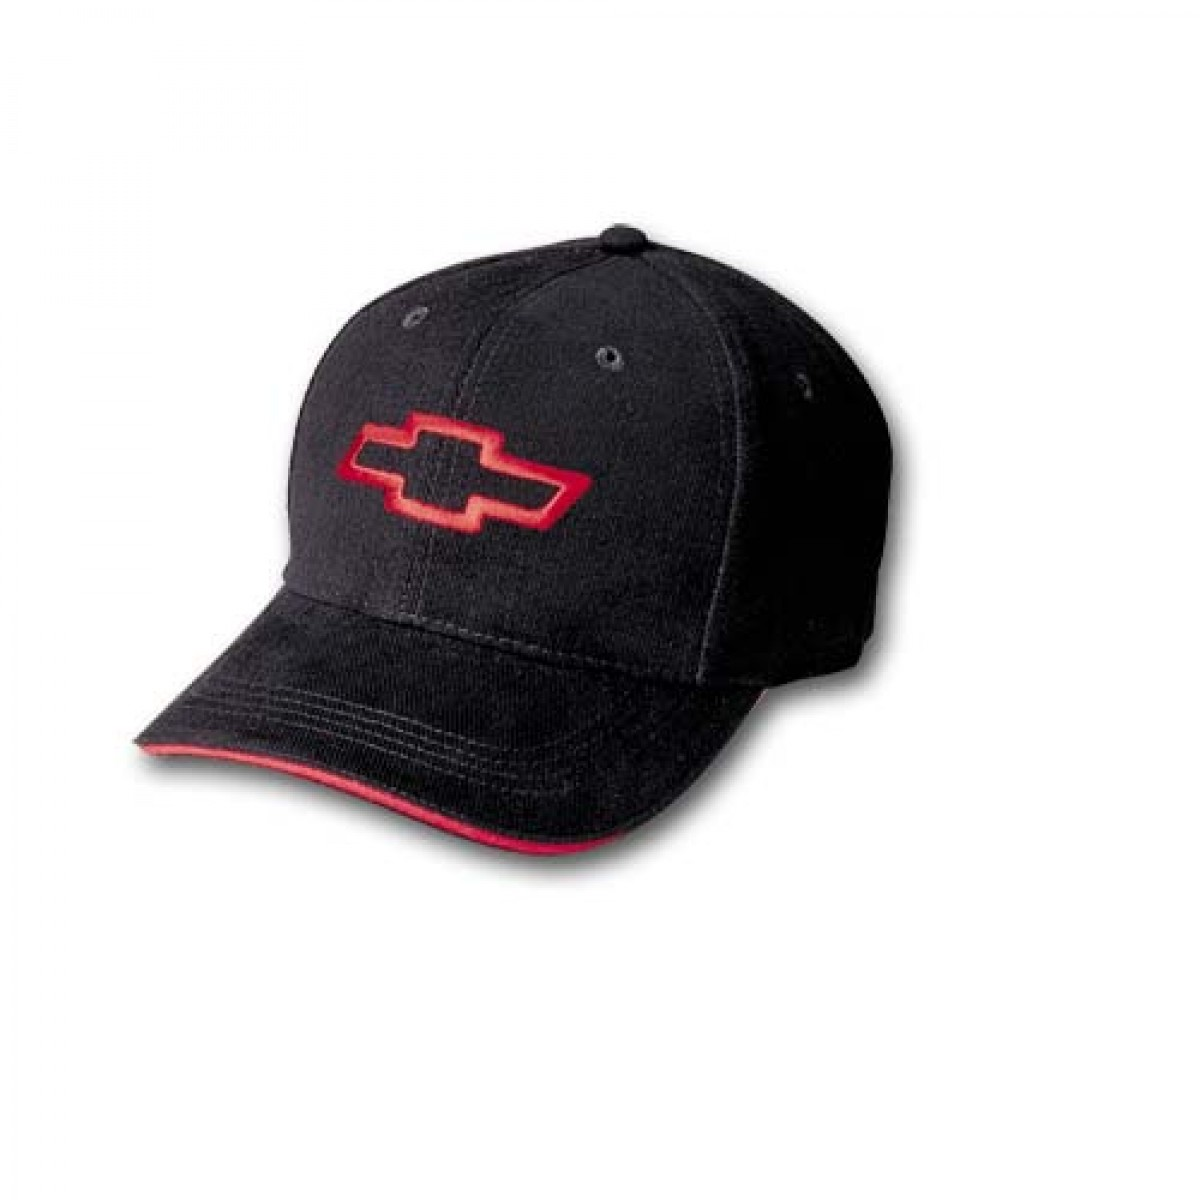 360f5afd416 Chevy Hat with Red Bowtie